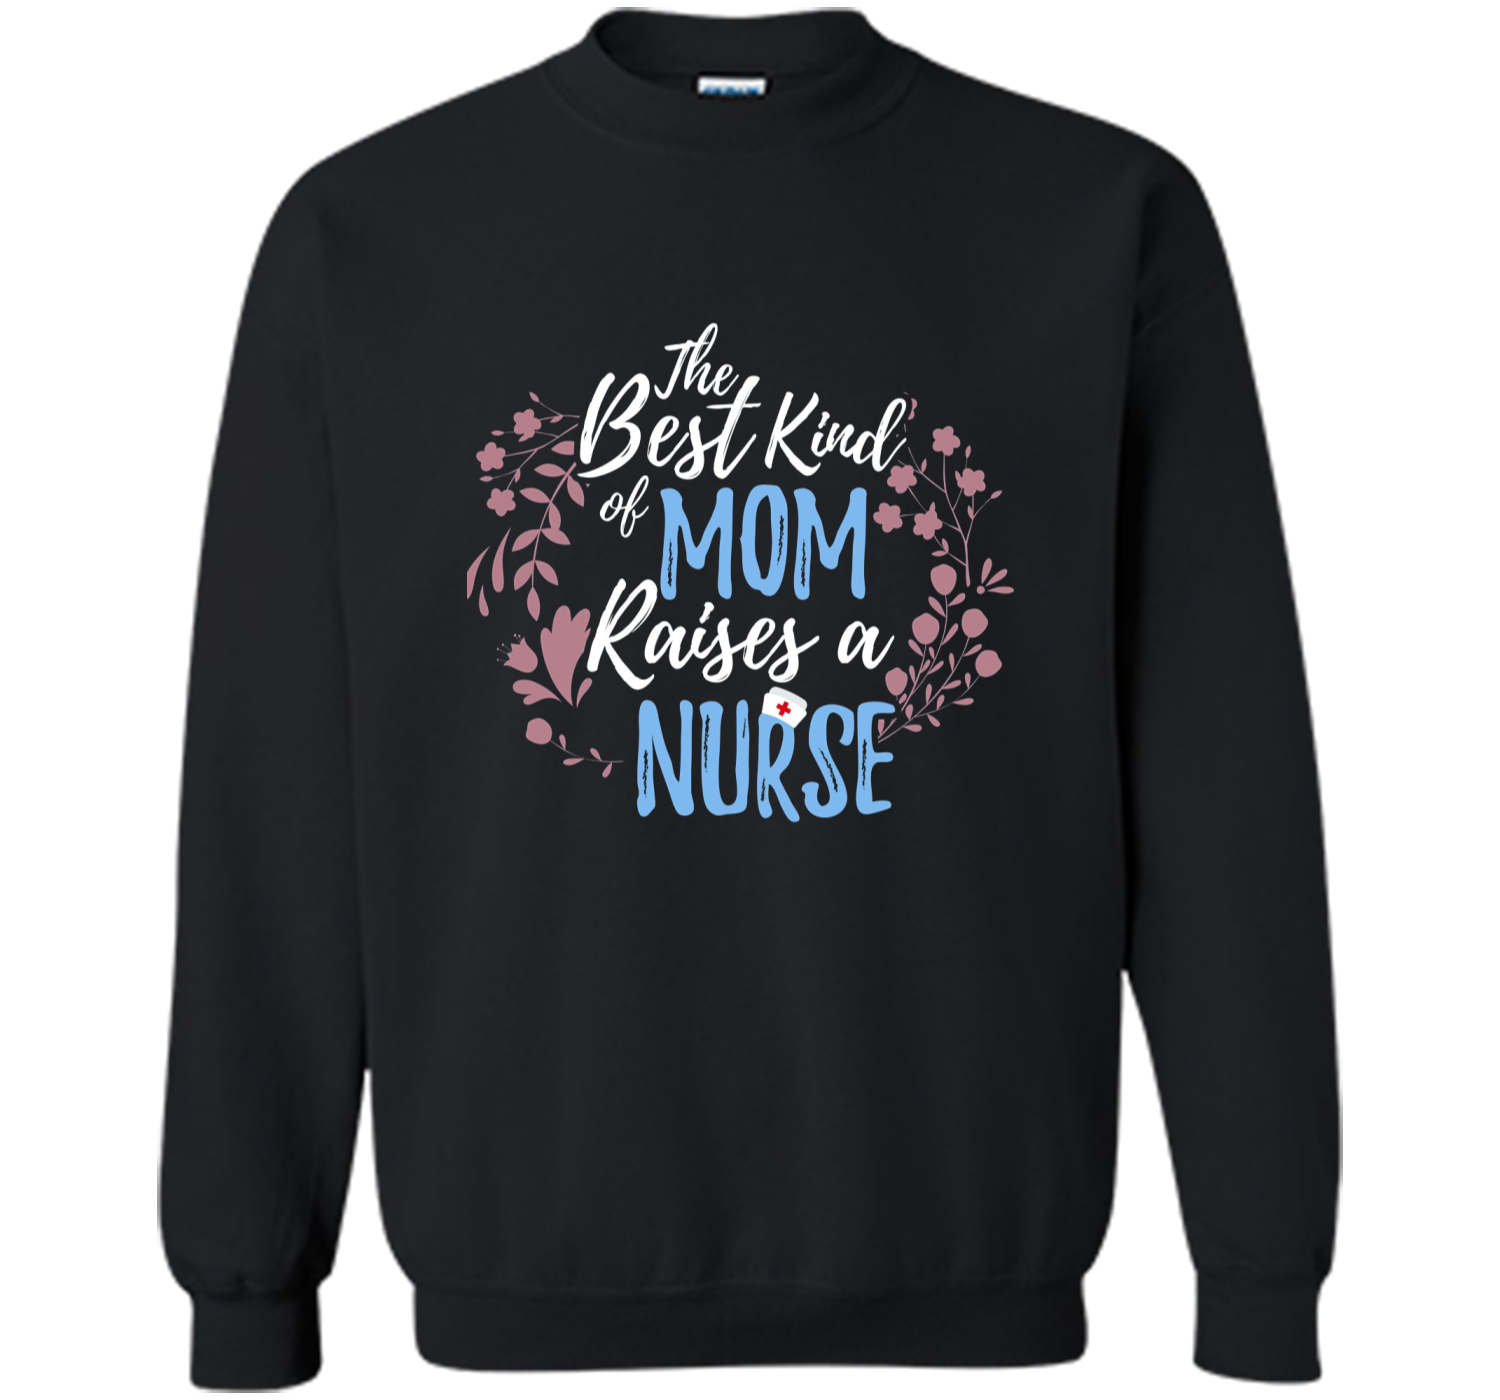 Best Kind Of Mom Raises Nurse T Shirt Mother's Day Gift